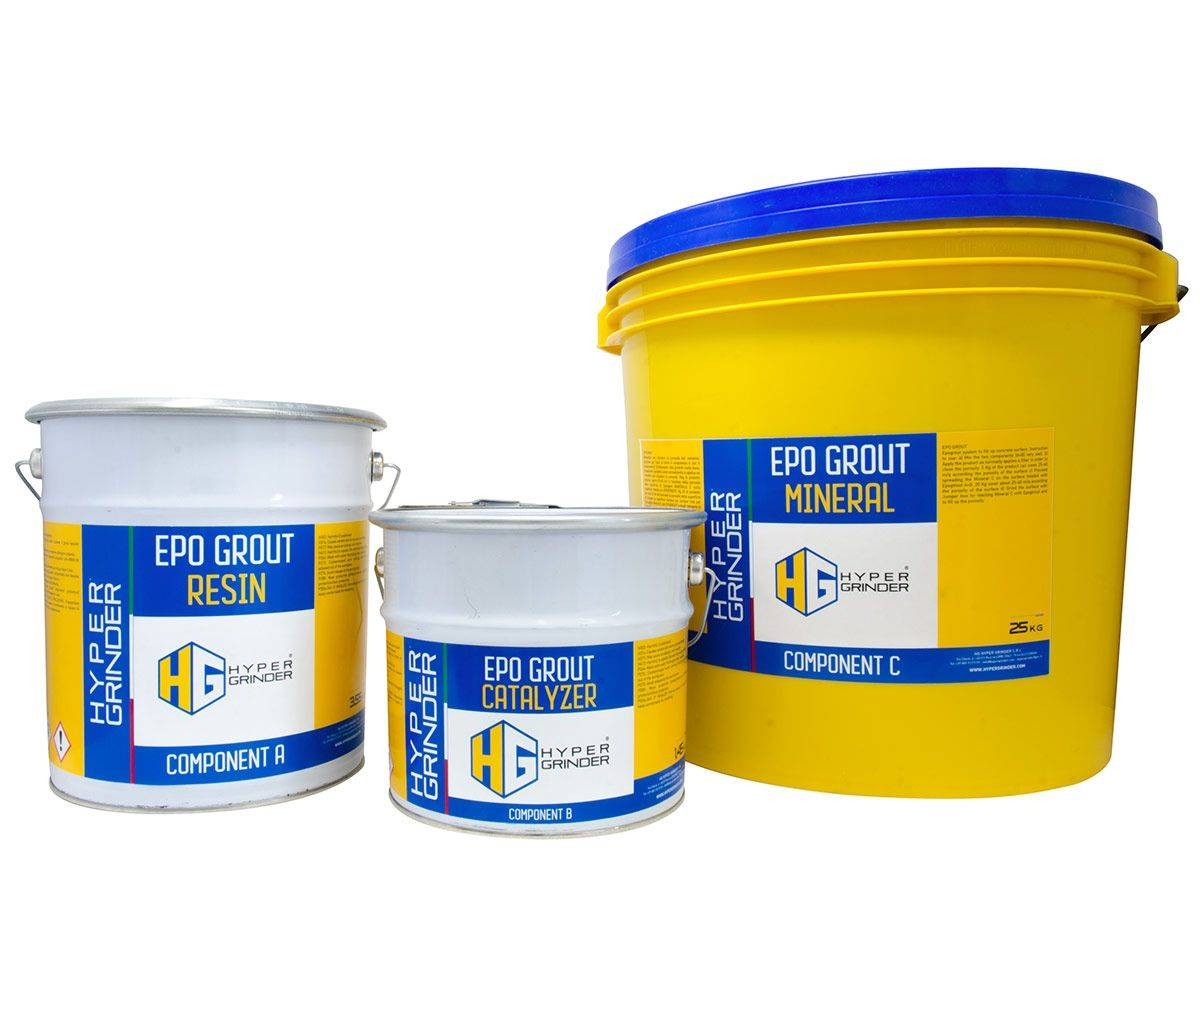 Epo grout 1517